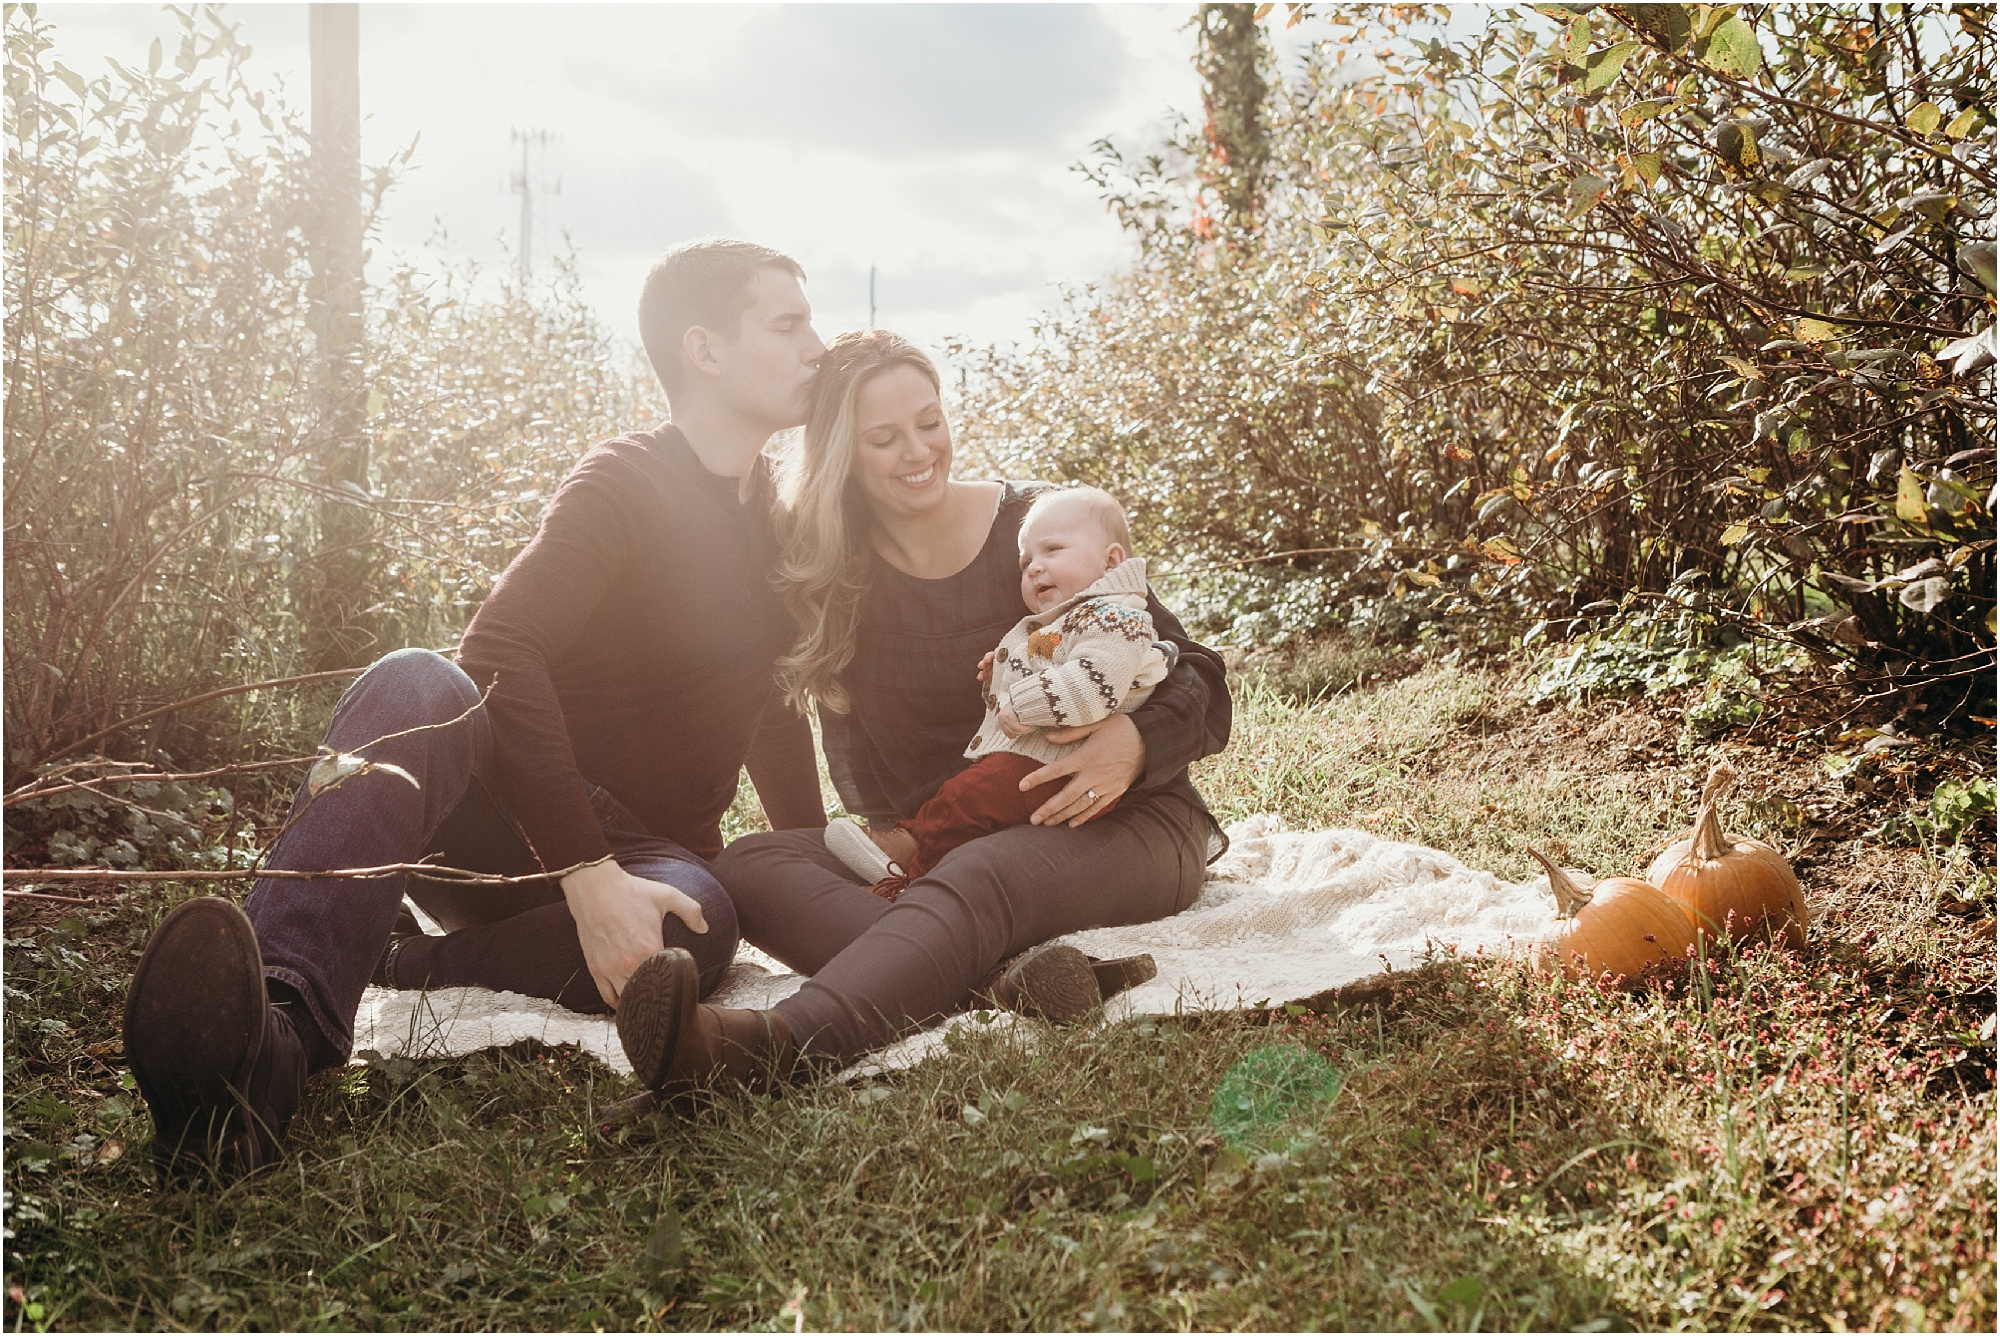 Melissa_Time_Fall_2017_Joe_Mac_Photography_Family_0006.jpg